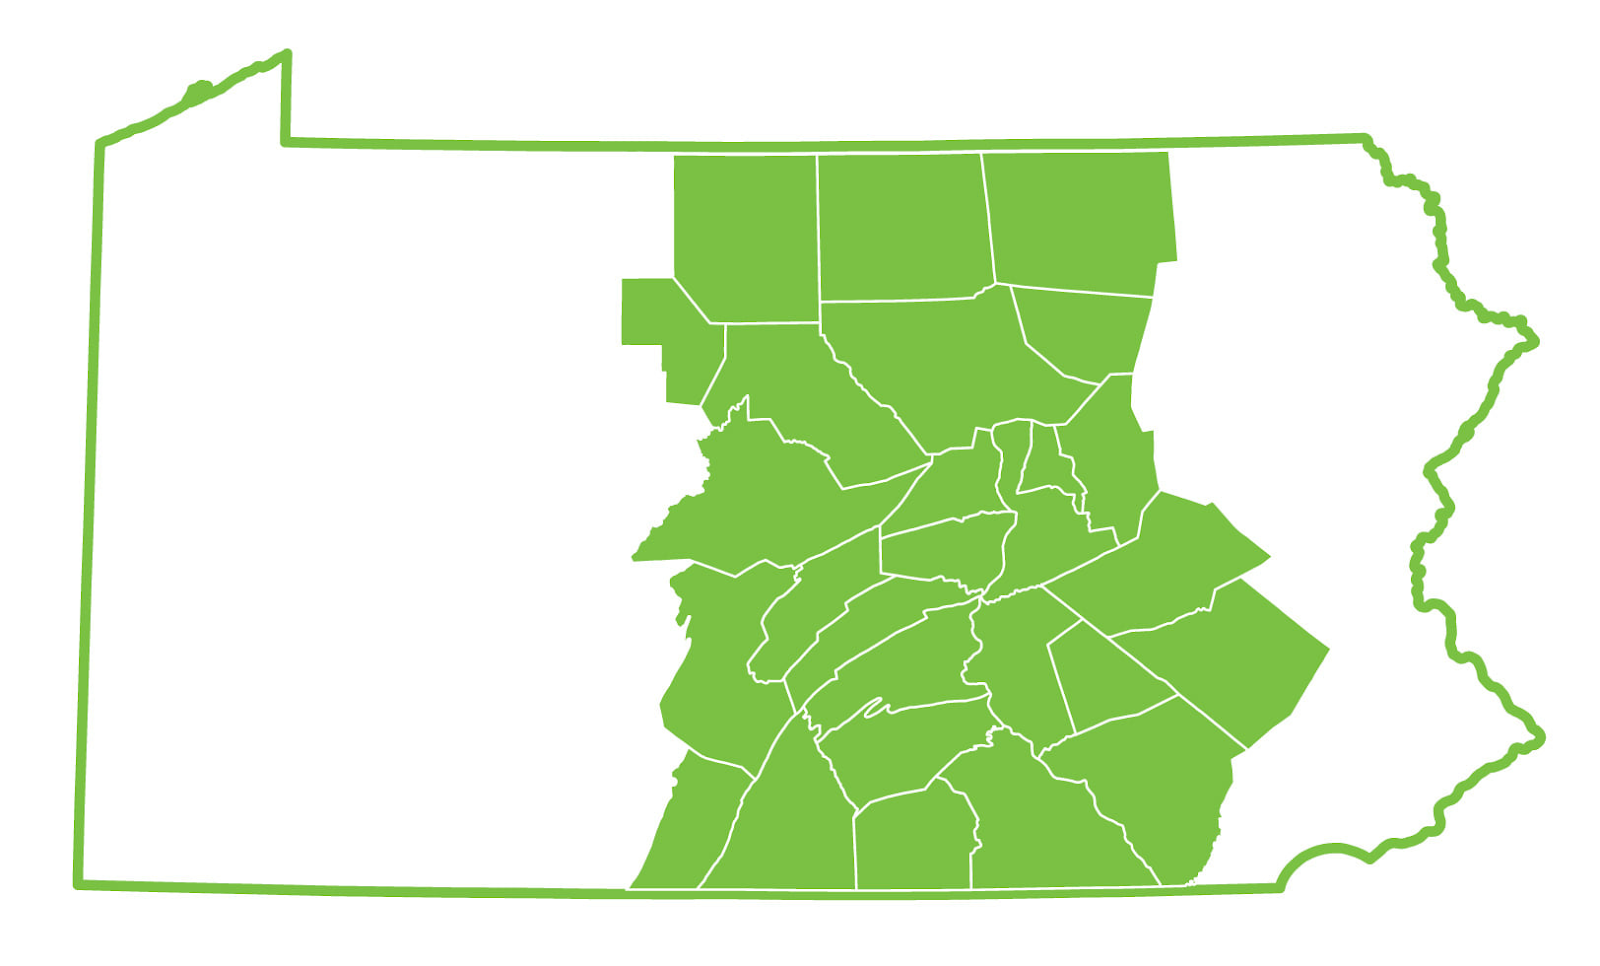 The central and south Pennsylvania area, our proud homeland that Lift, Inc. is happy to serve